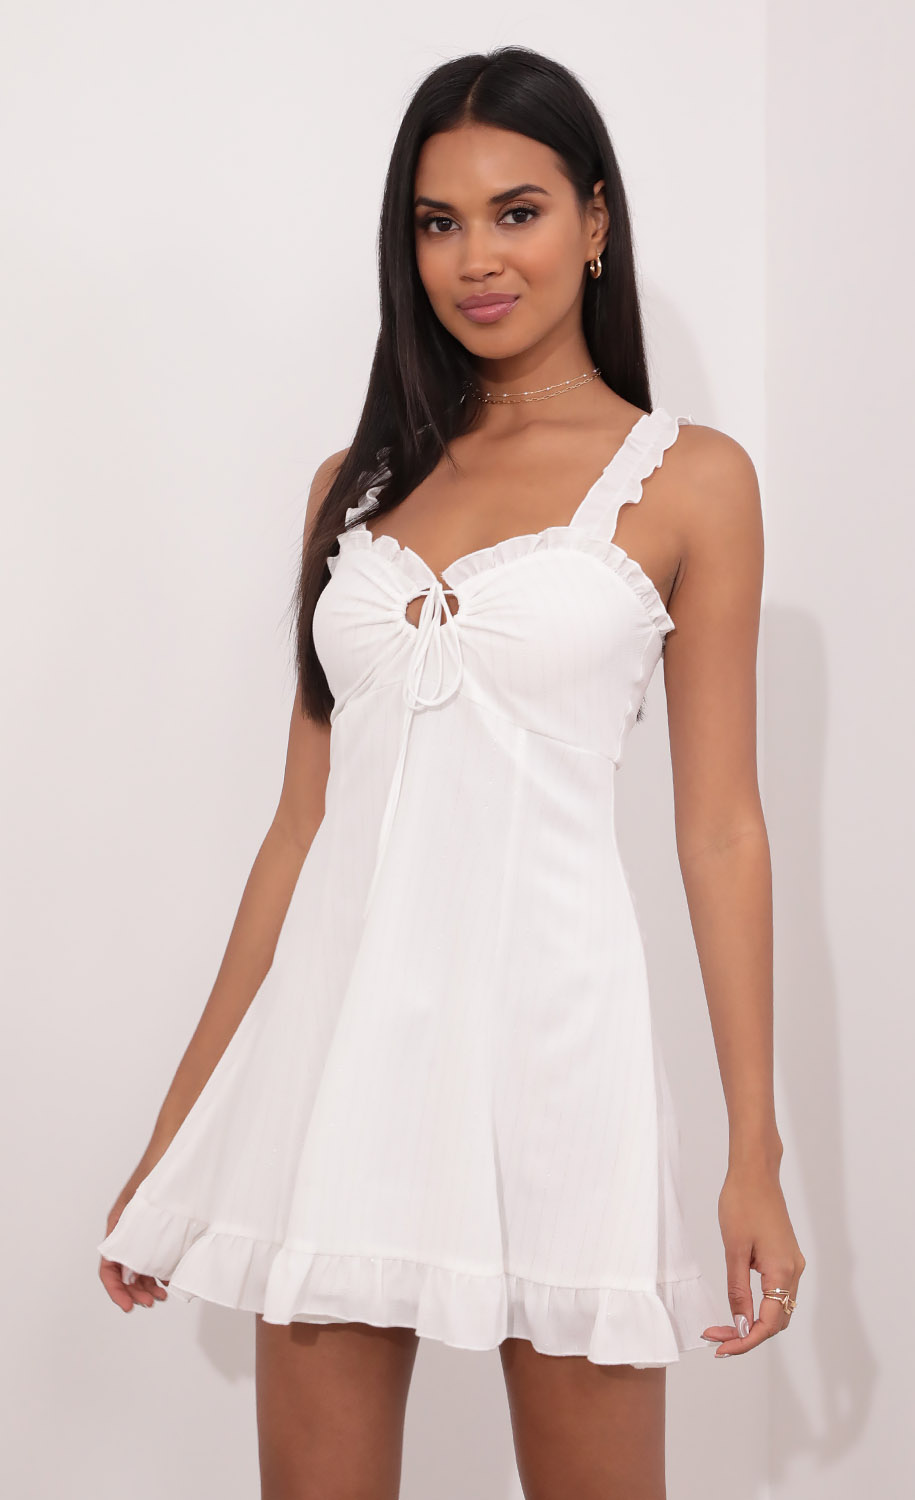 Ada Sweetheart Dress in White with Silver Pinstripes